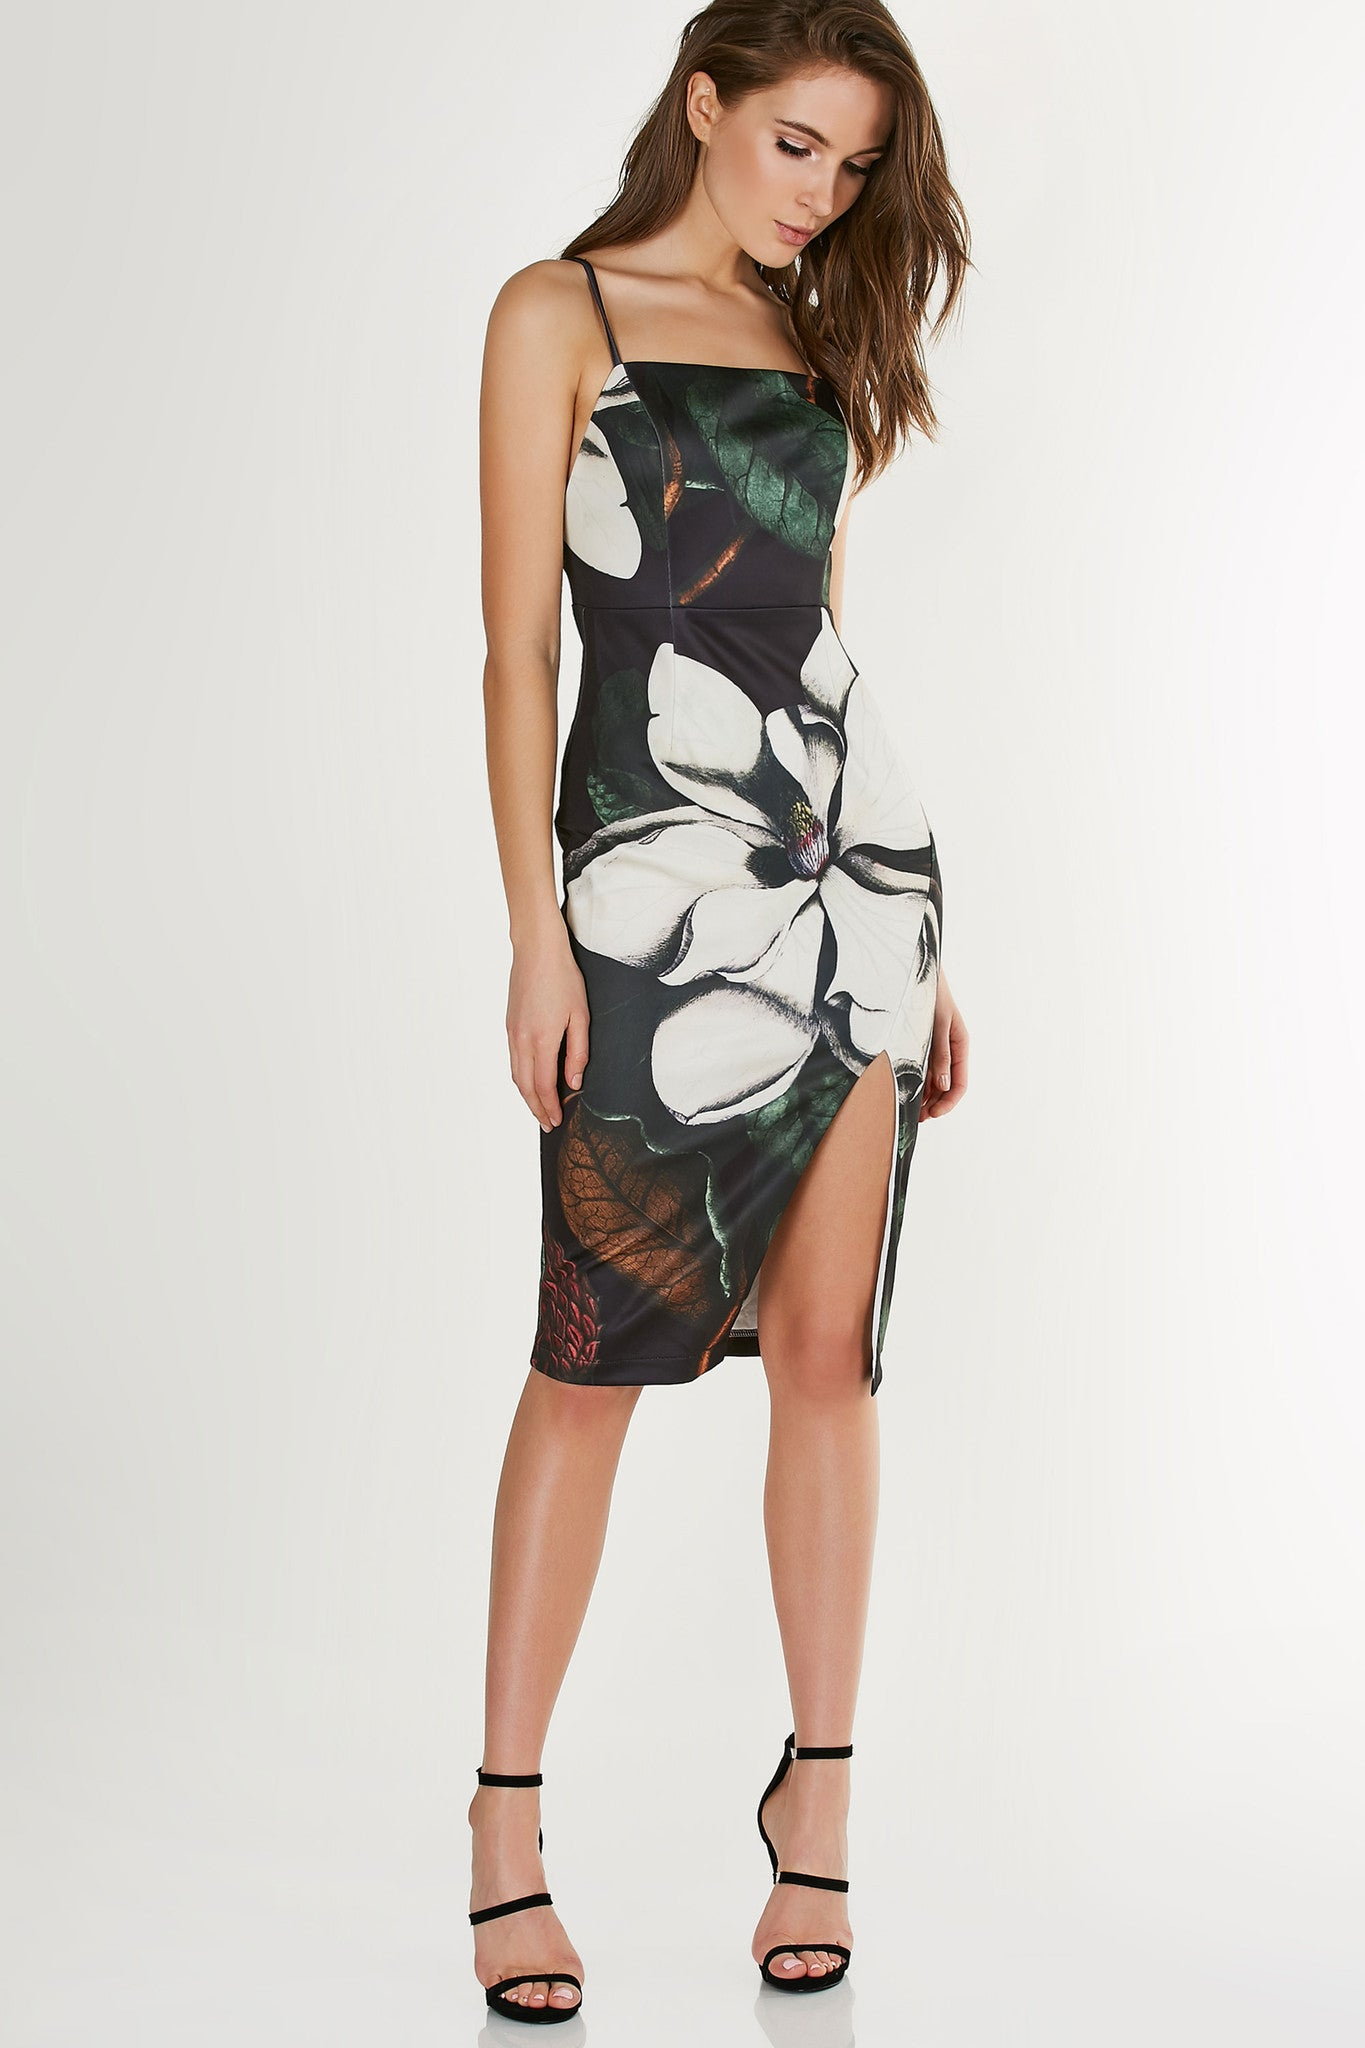 Printed sleeveless midi dress with boxi neckline and structured fit. Fully lined with floral patterns throughout. Asymmetrical slit in front with hidden back zip closure.